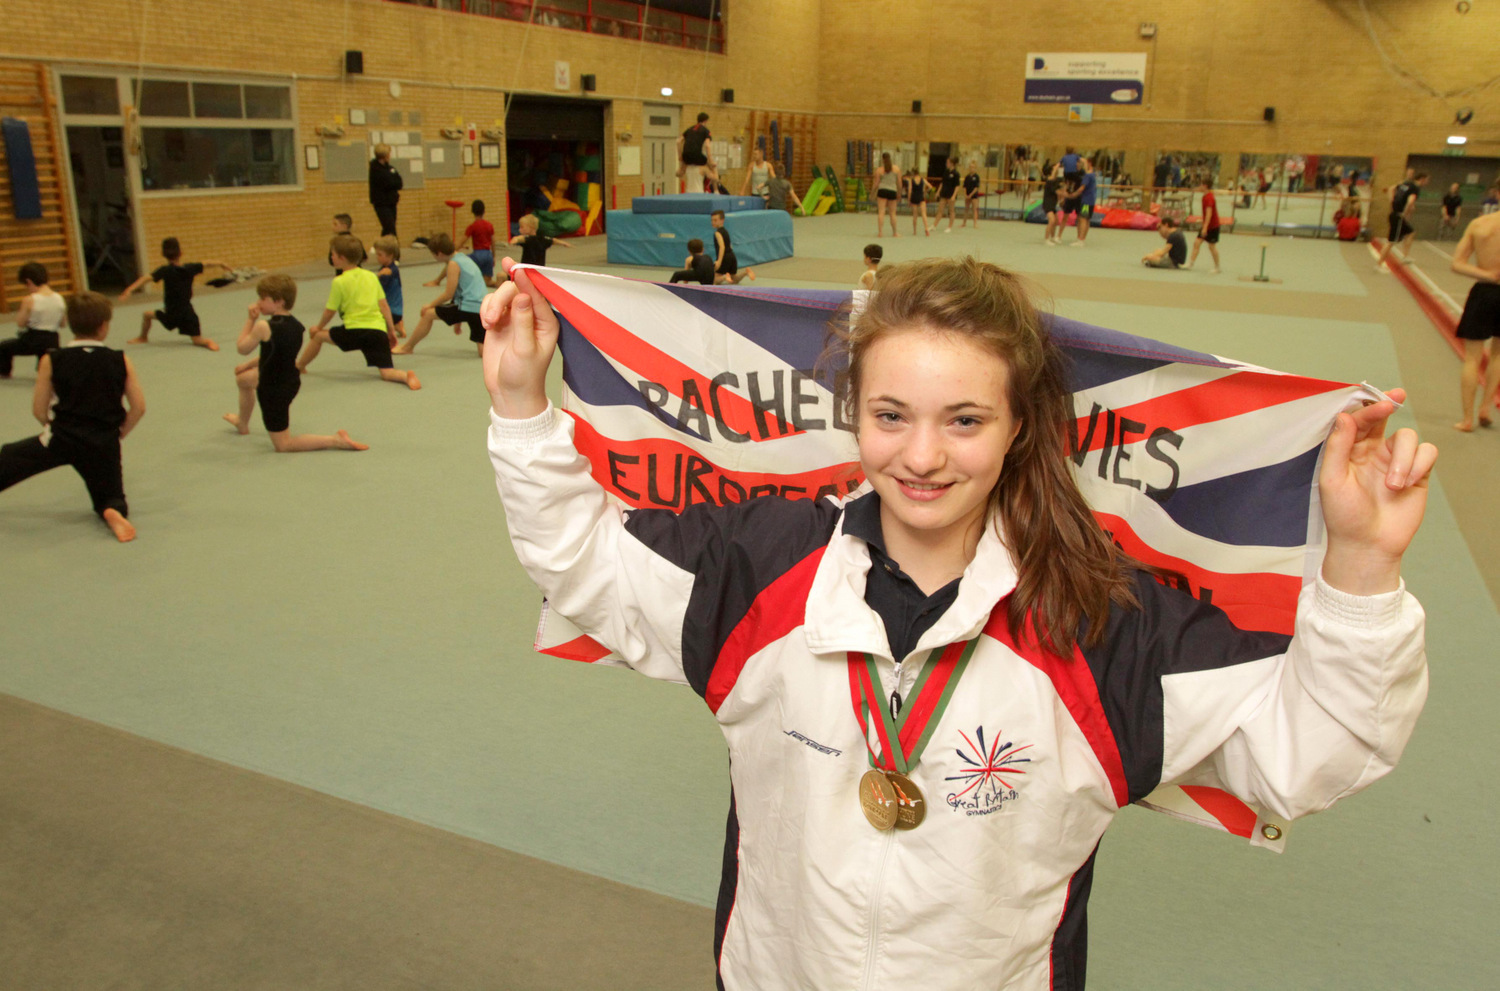 MAKING AN IMPRESSION: Rachel Davies enjoyed a successful European Championships, winning two gold medals